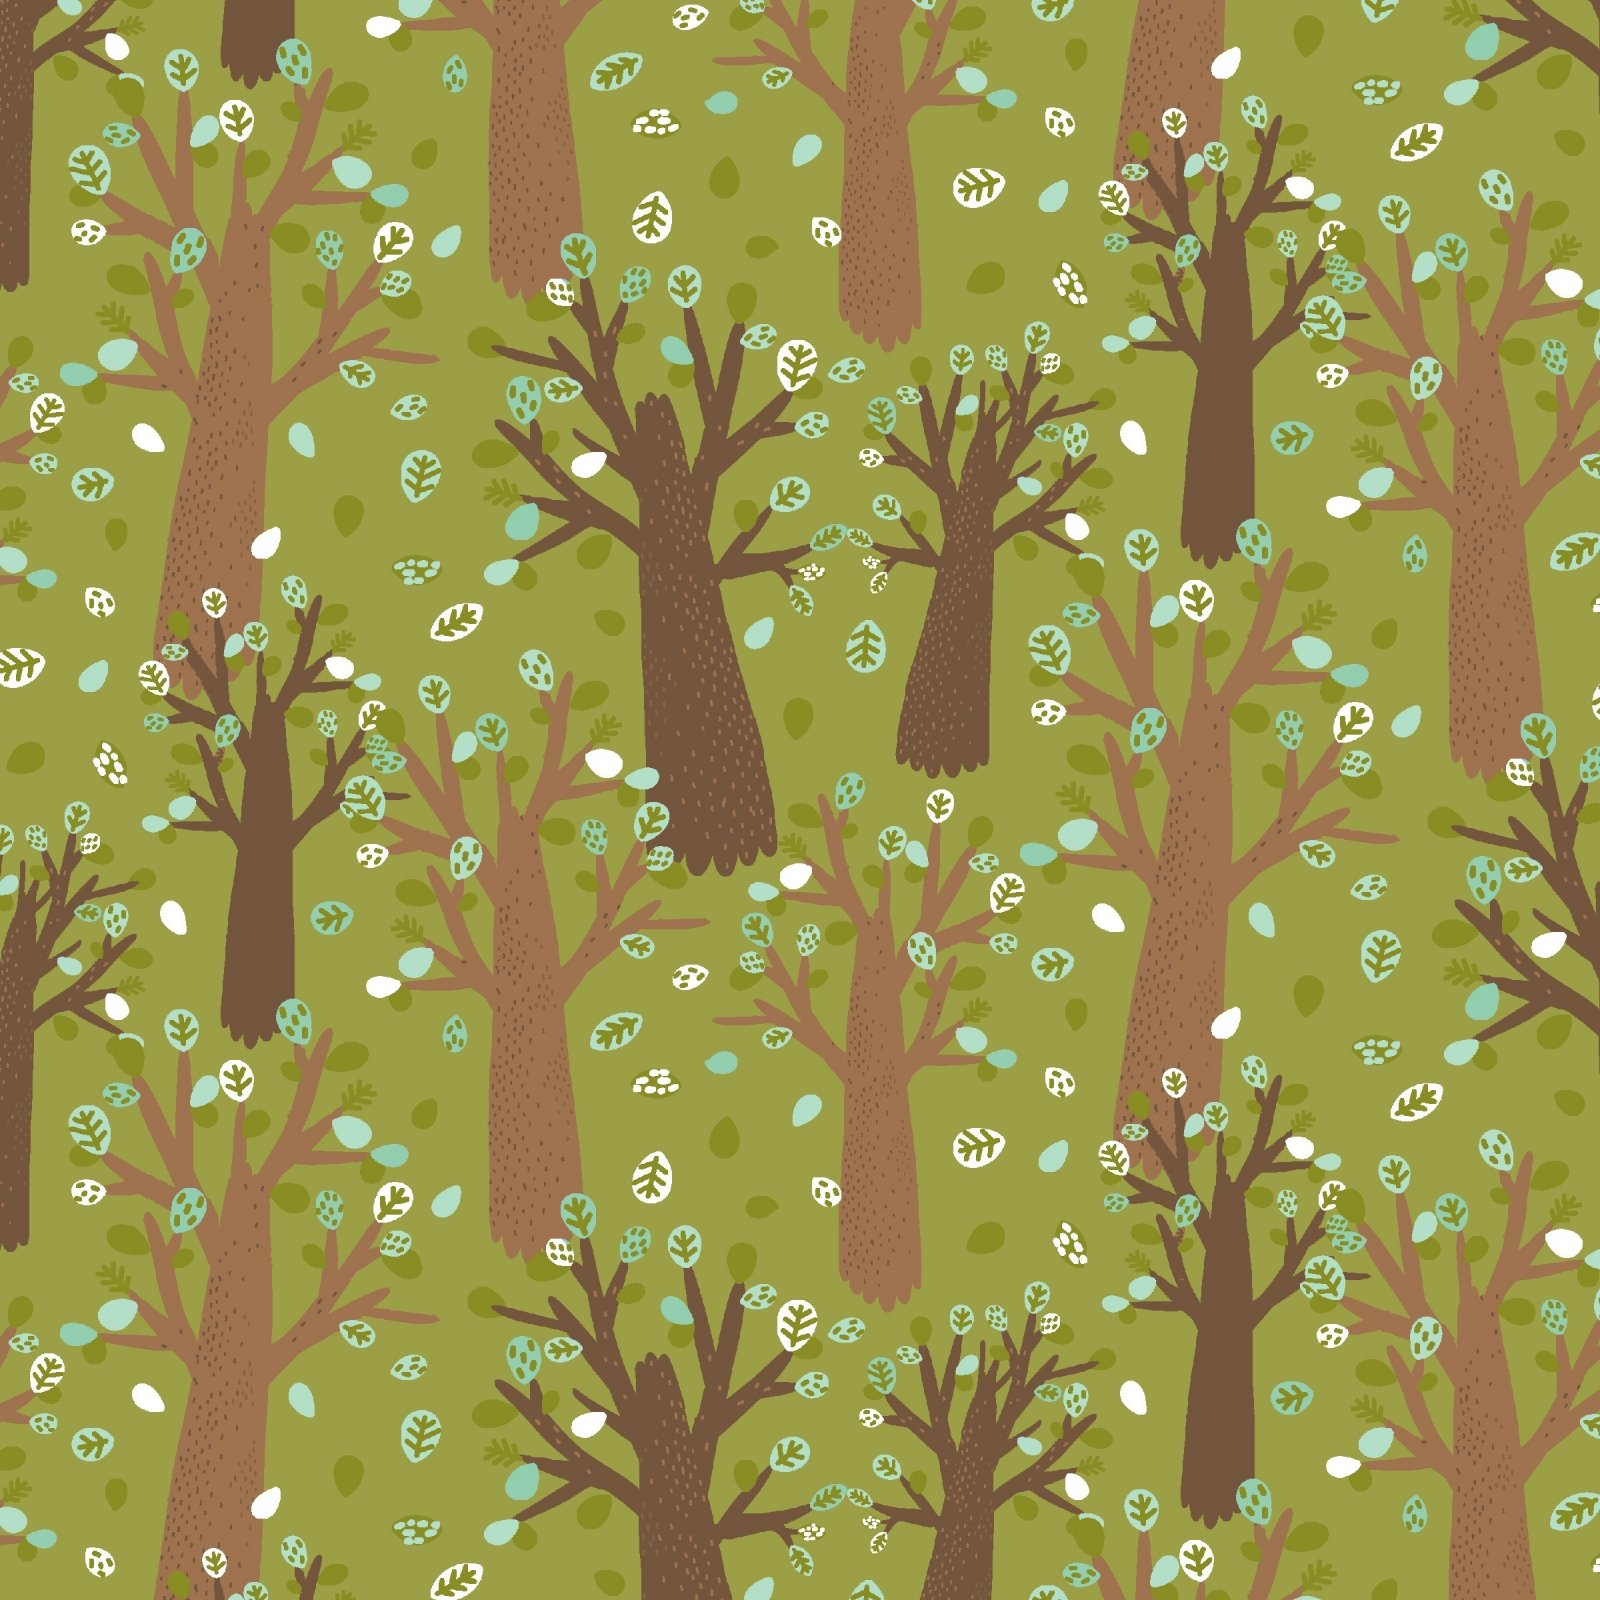 15046 Animal Hugs for 3 Wishes Fabrics. 100% cotton 43 wide